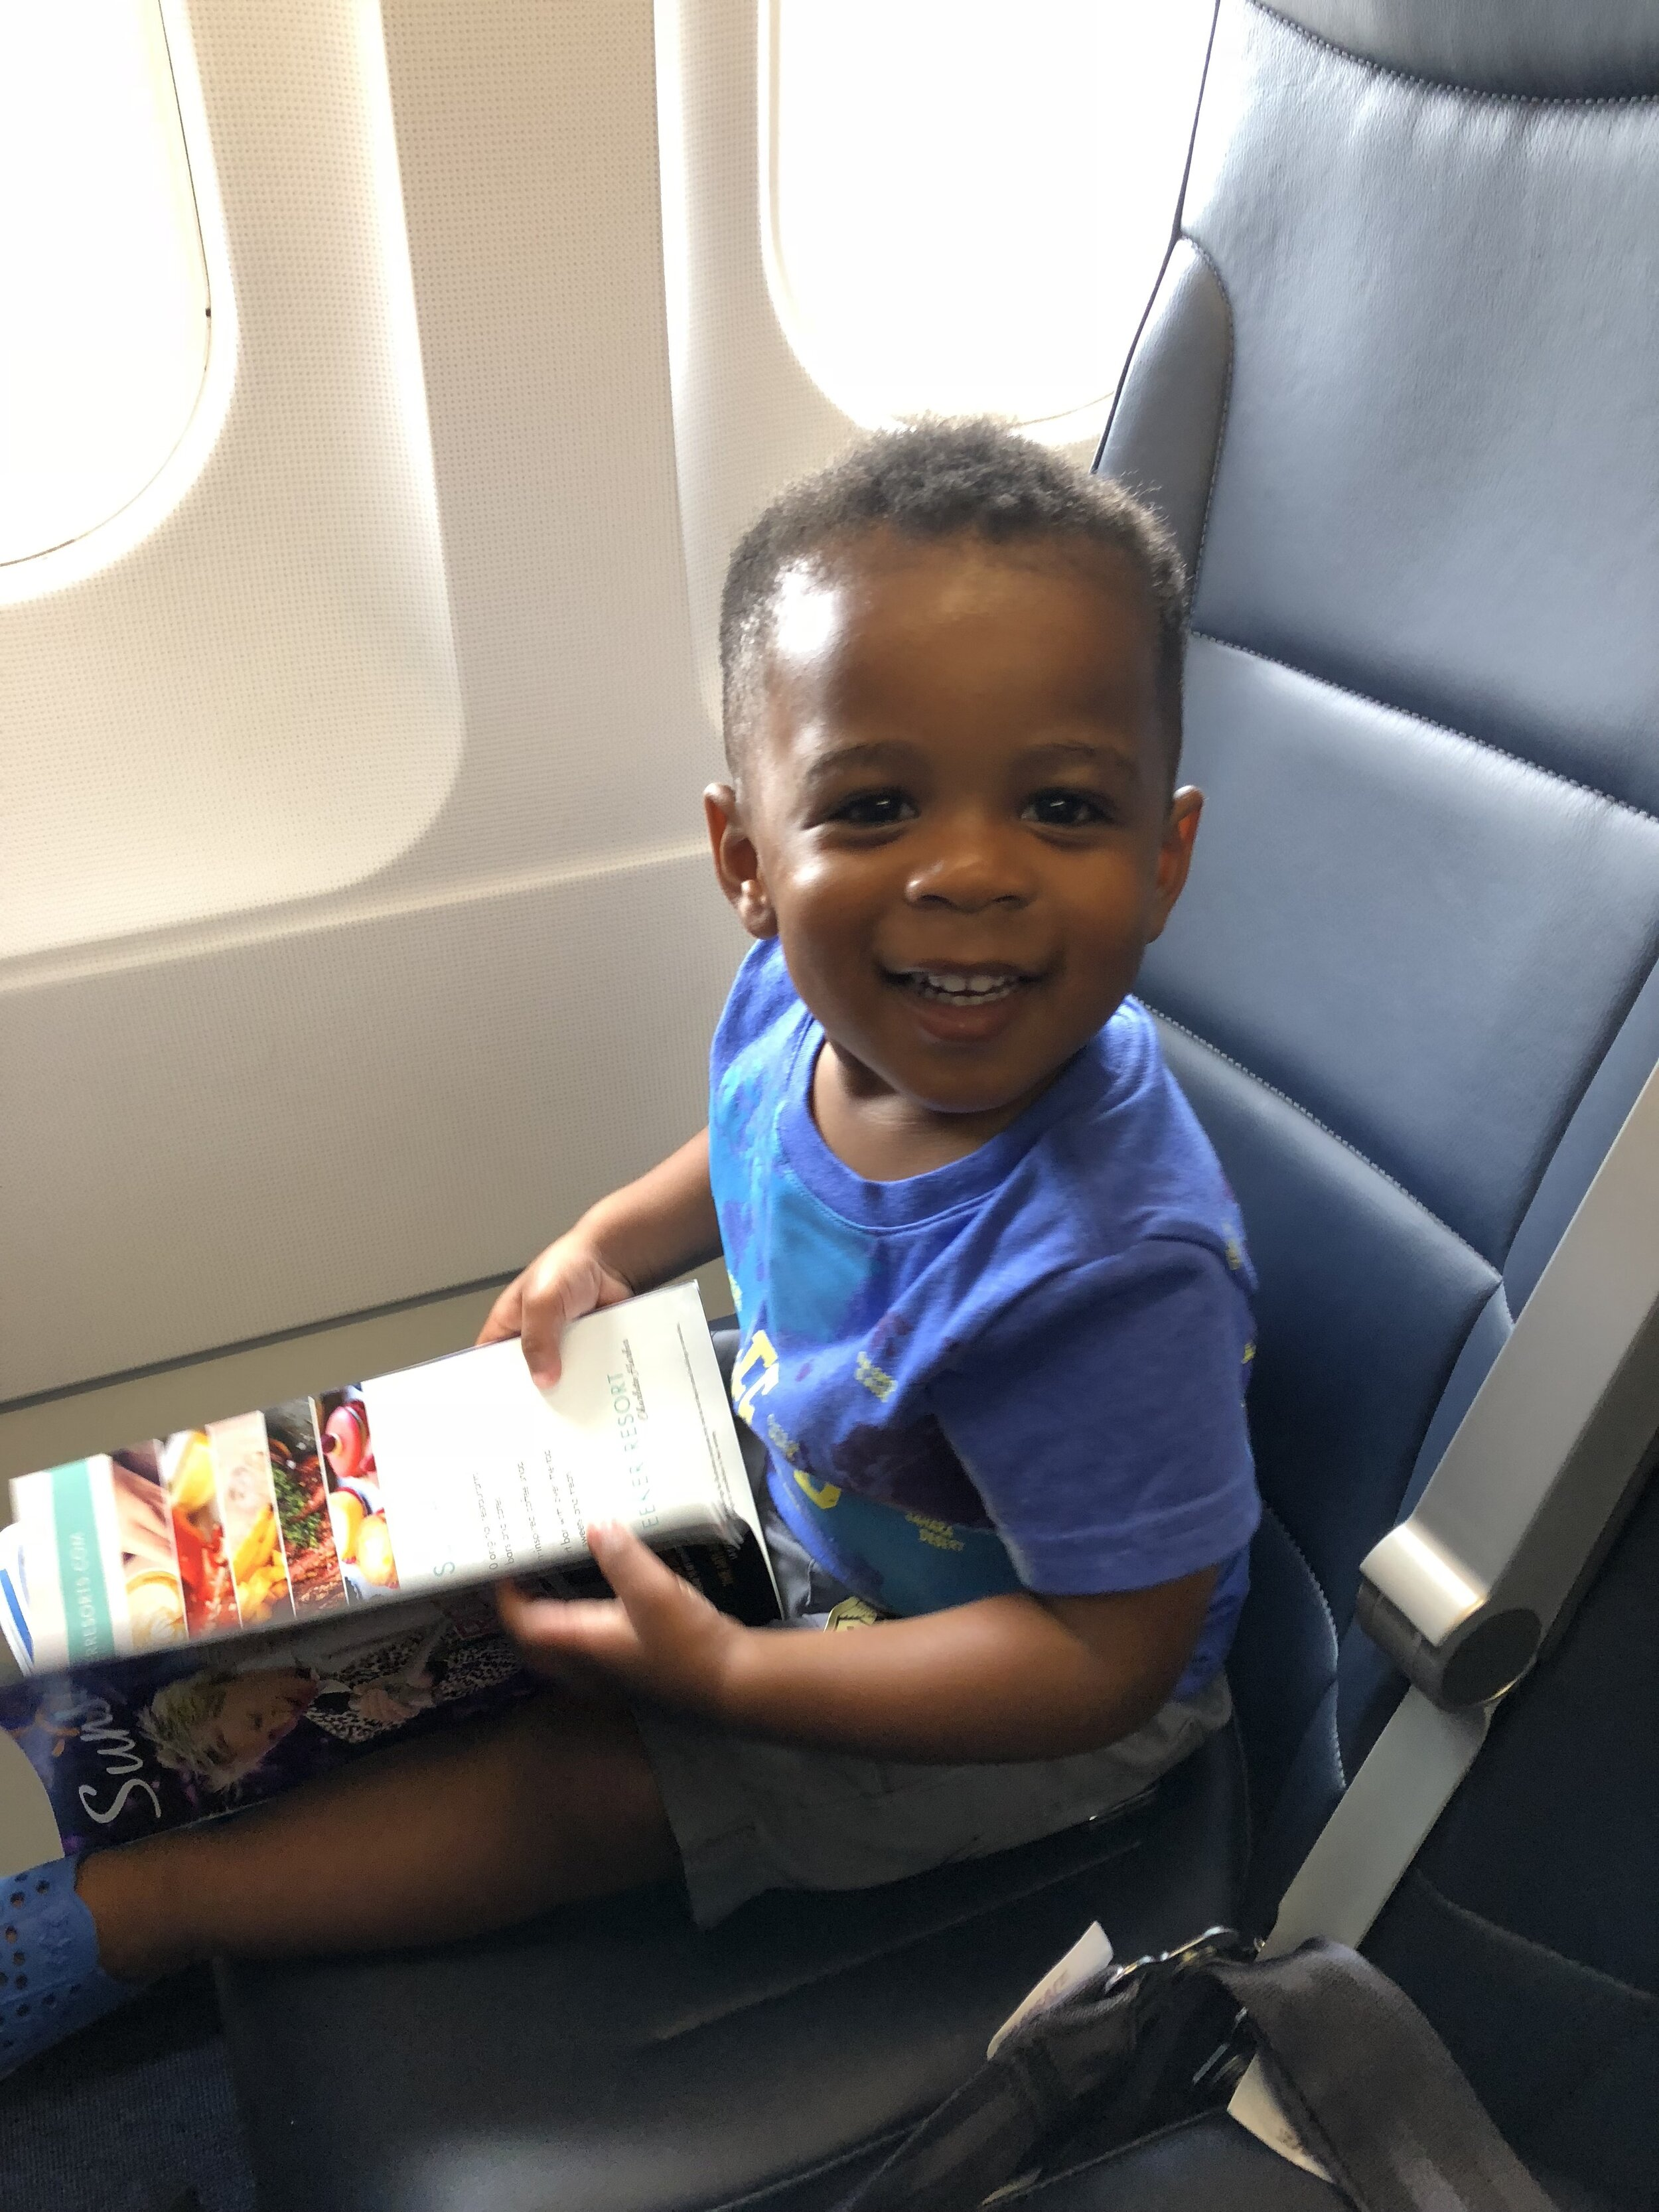 Maxwell on a flight to visit the grandparents in Florida